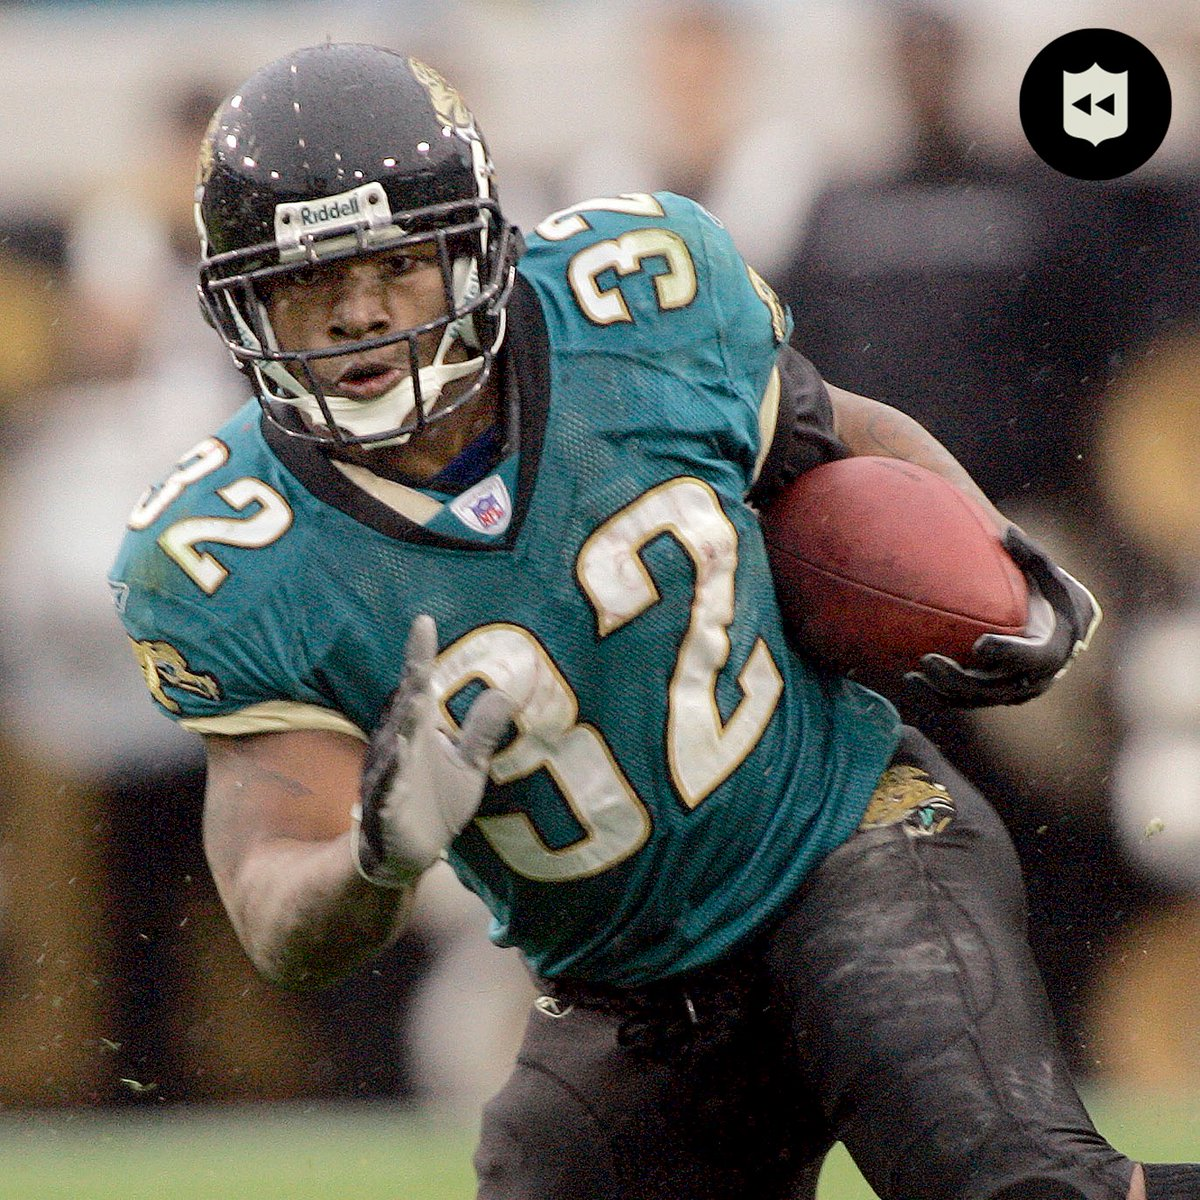 The time @MJD completely disappeared from the screen before running for a TD 🧐 @Jaguars (Dec. 24, 2006)